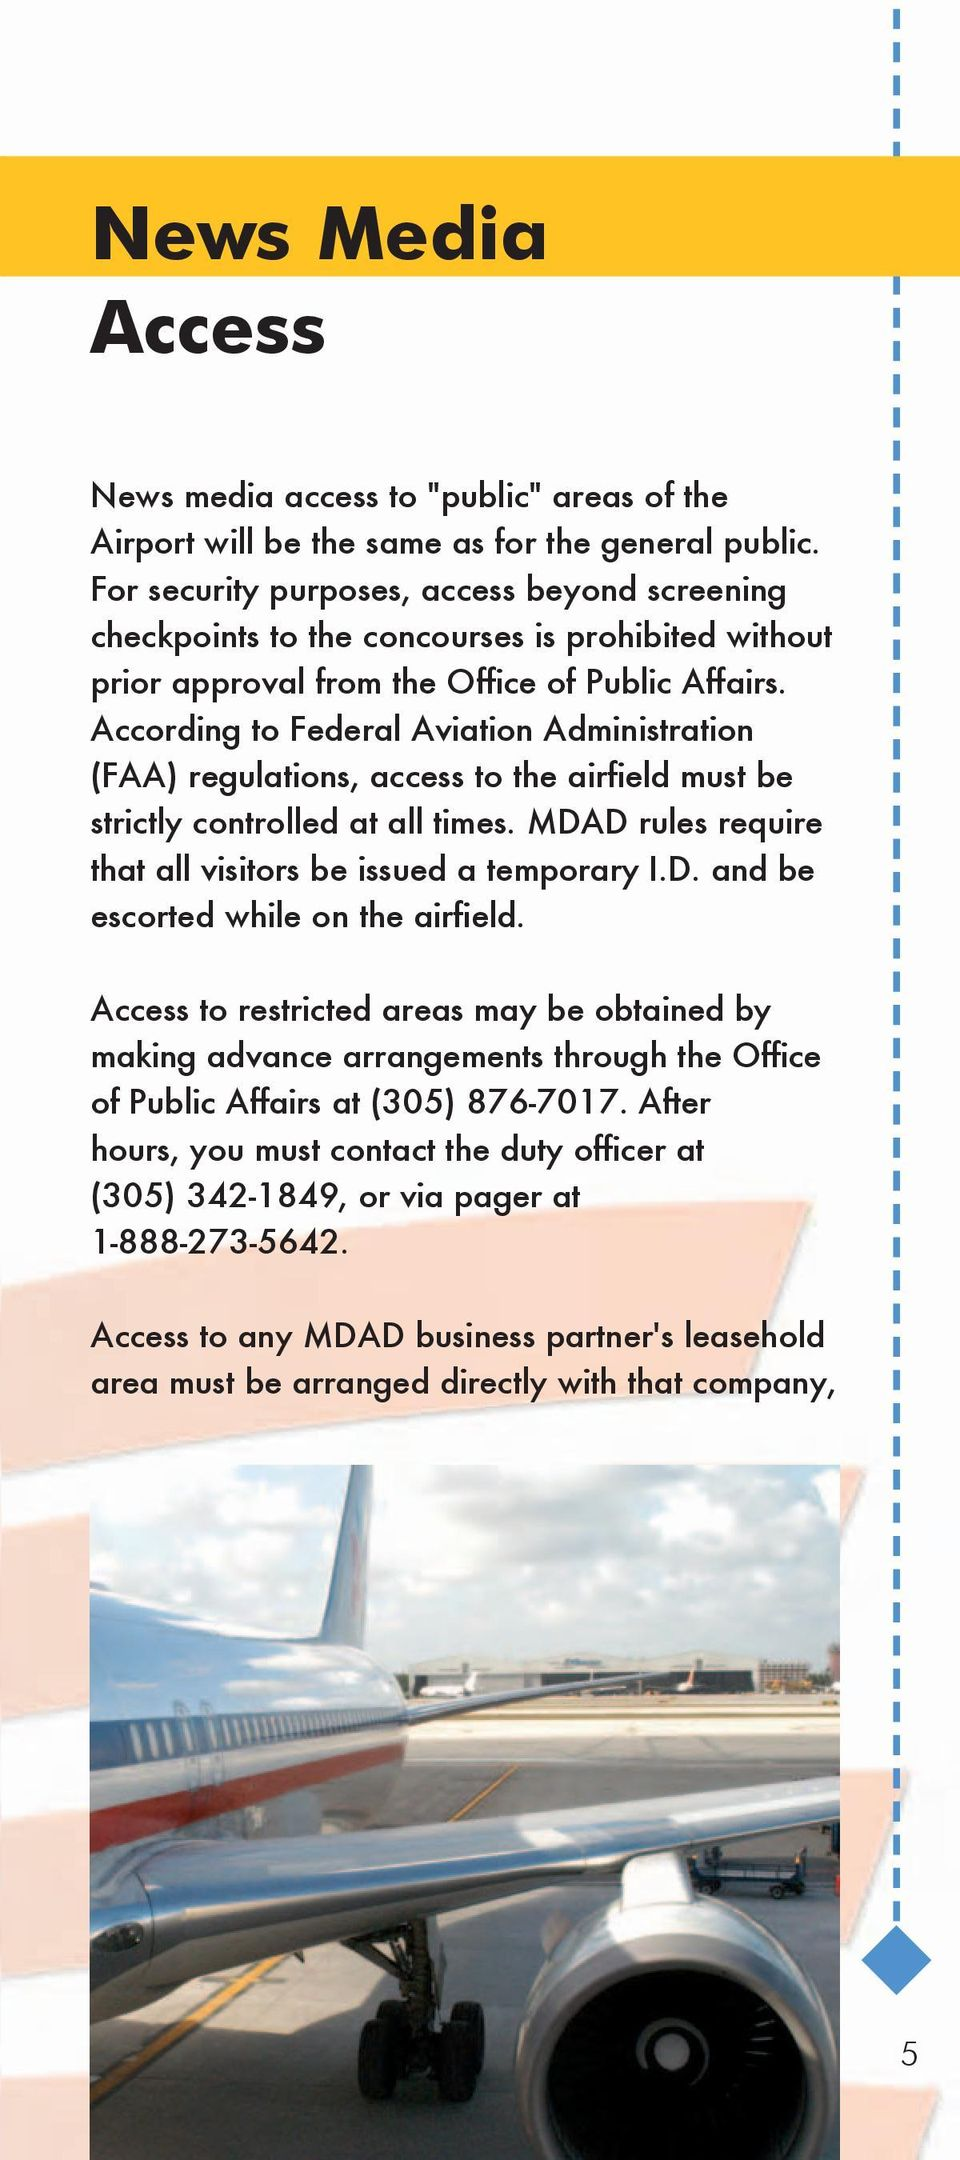 According to Federal Aviation Administration (FAA) regulations, access to the airfield must be strictly controlled at all times. MDAD rules require that all visitors be issued a temporary I.D. and be escorted while on the airfield.